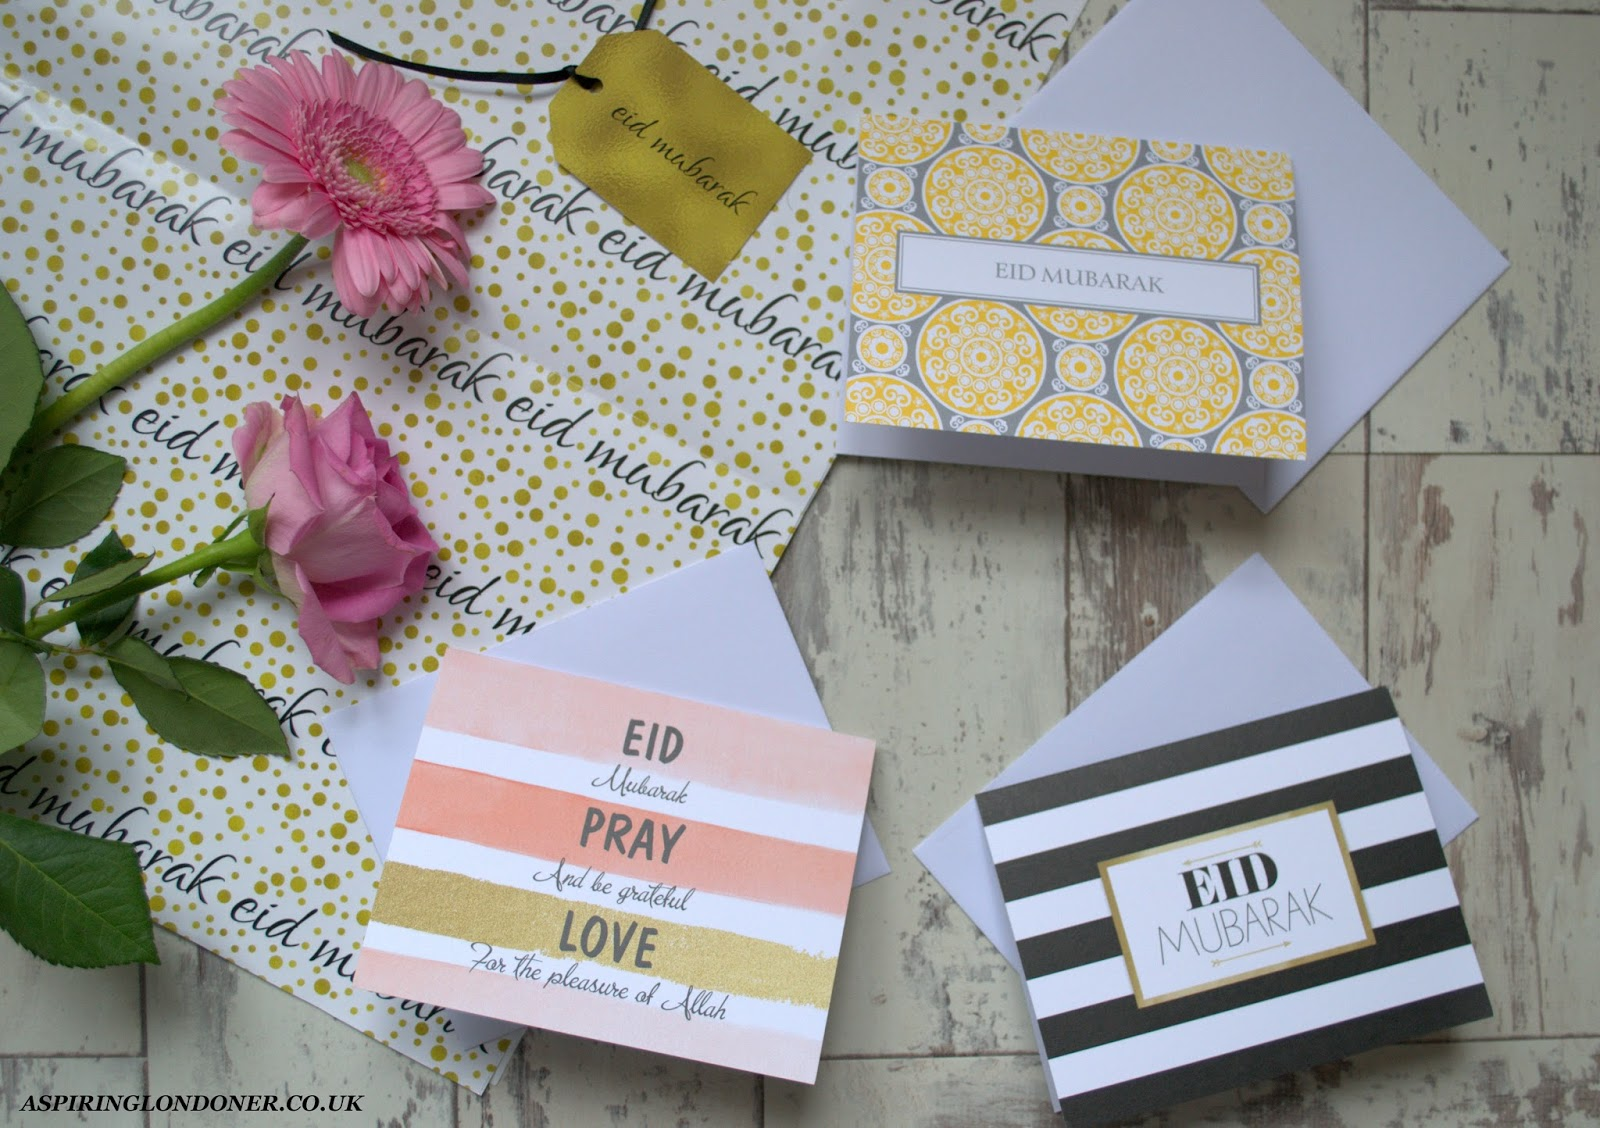 Eid Greeting Cards by Muslim by Design - Aspiring Londoner